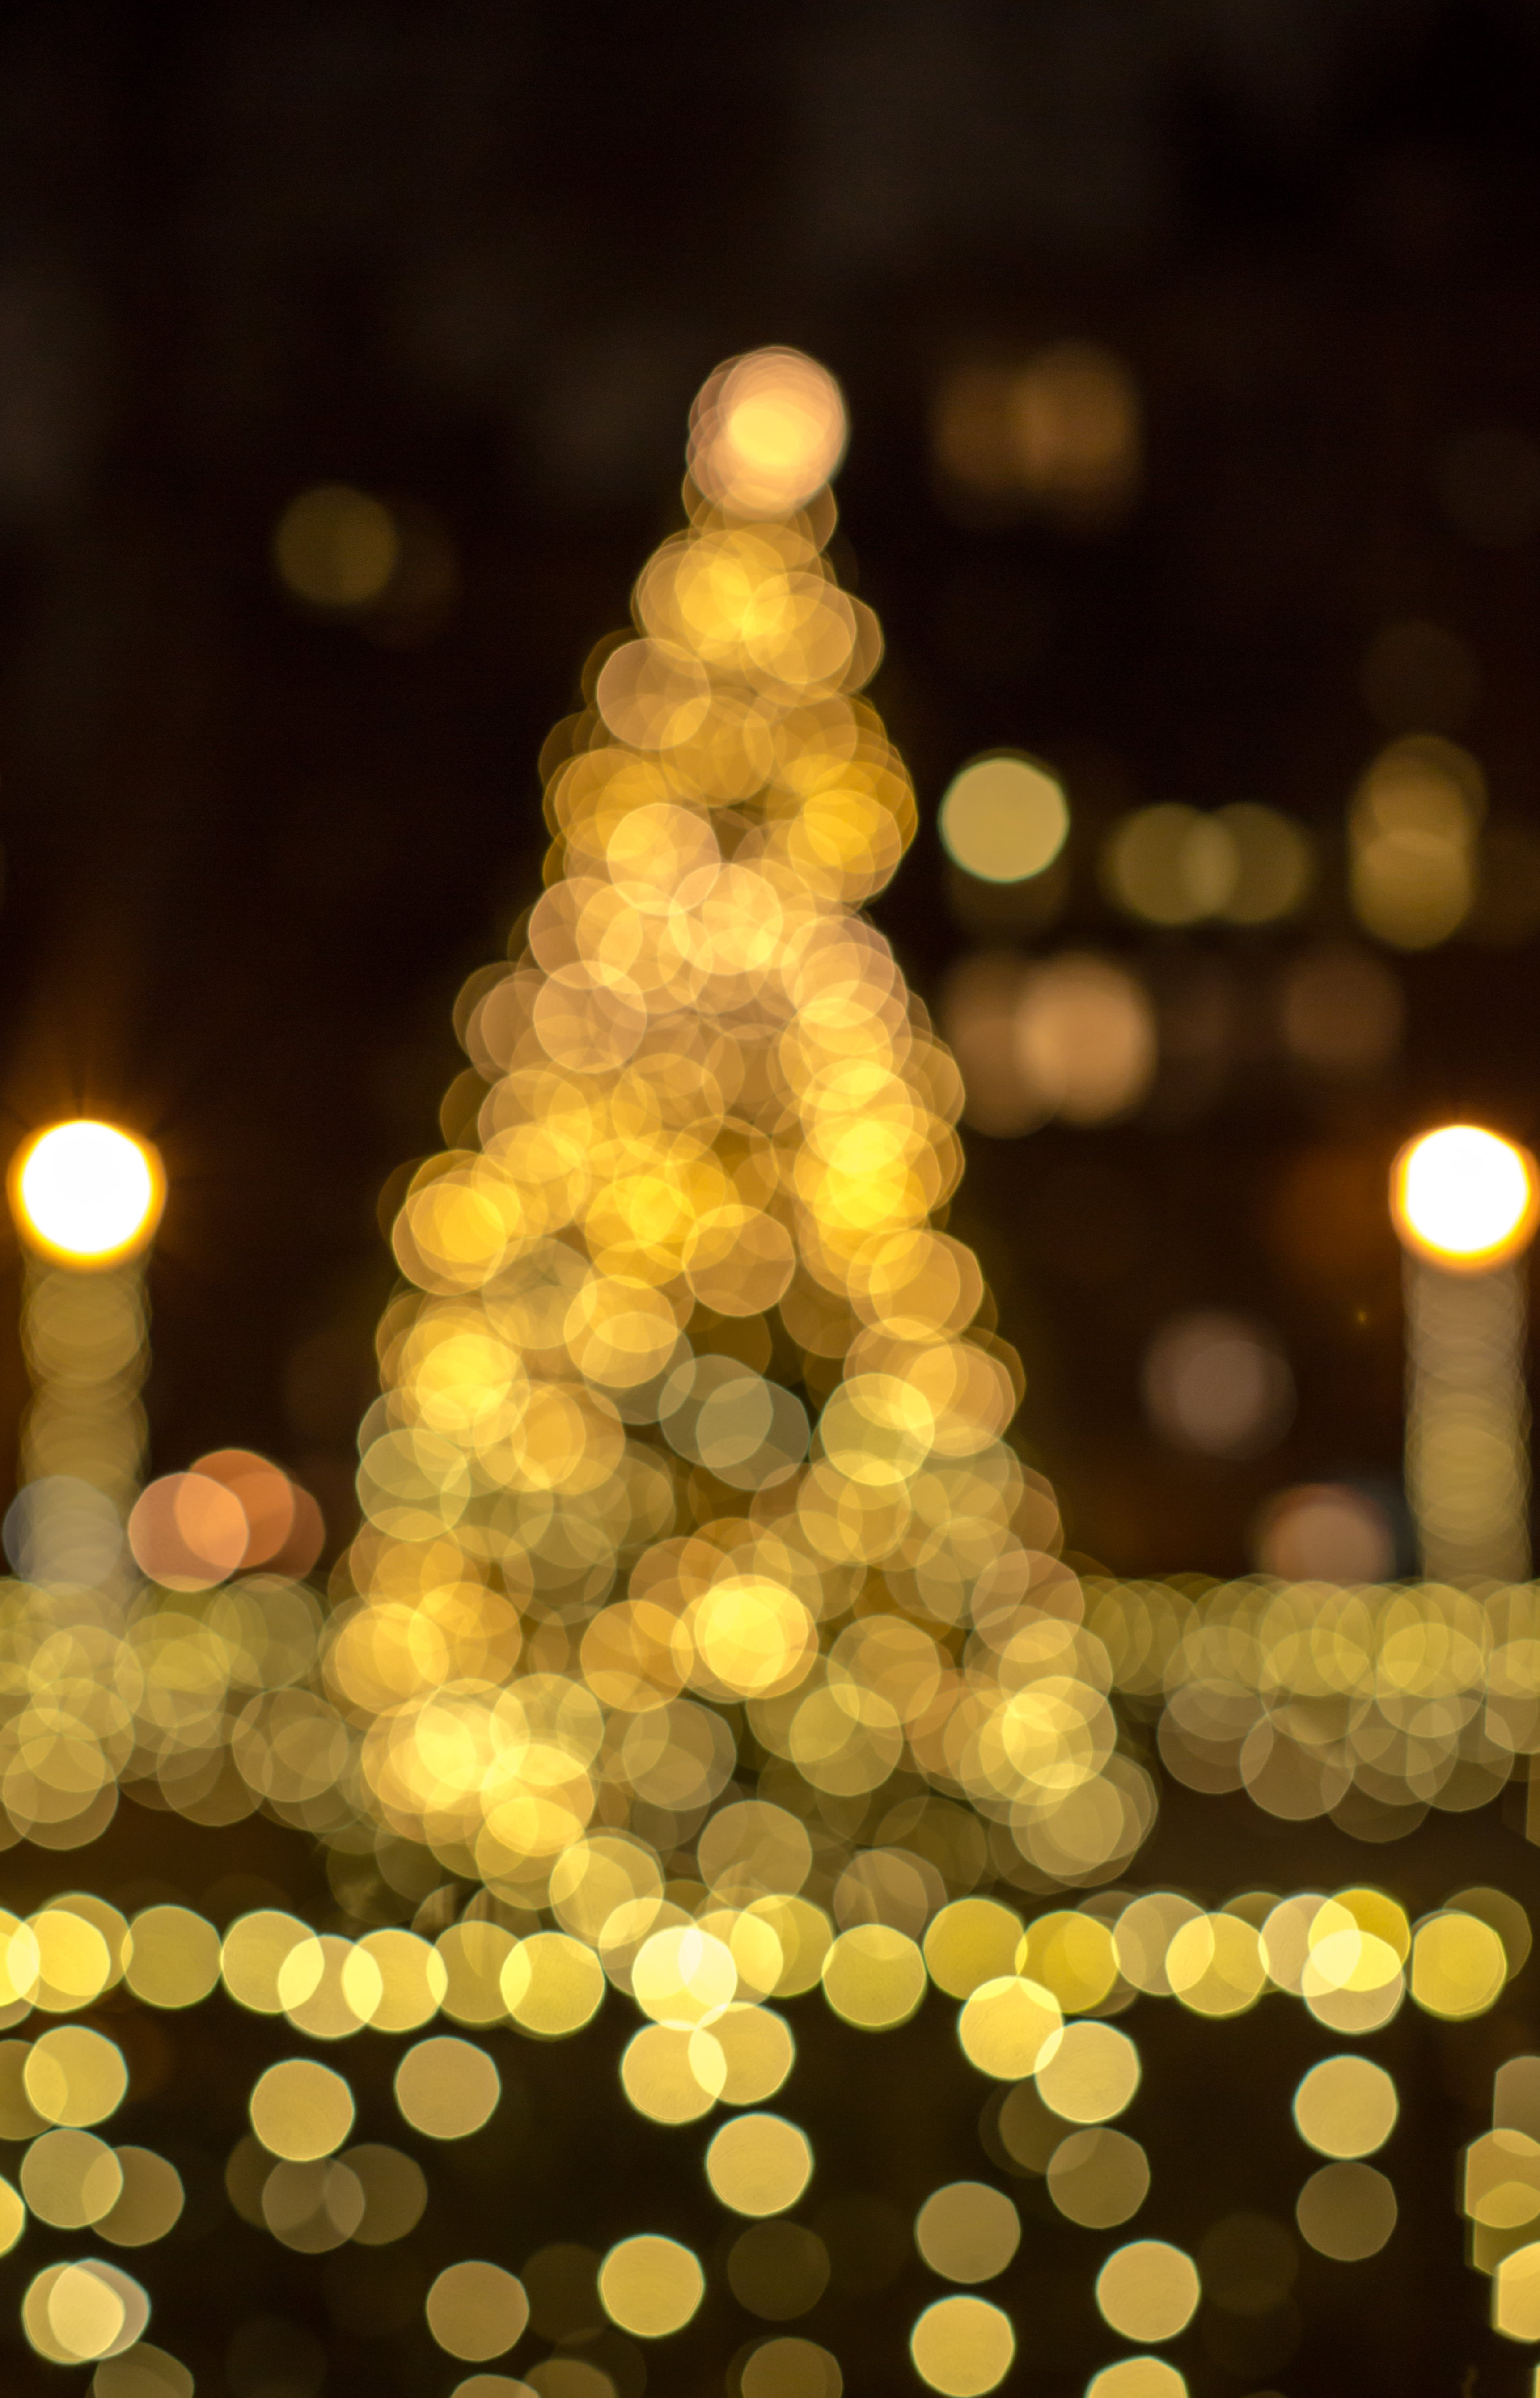 Blurred tree in lights  example image 1